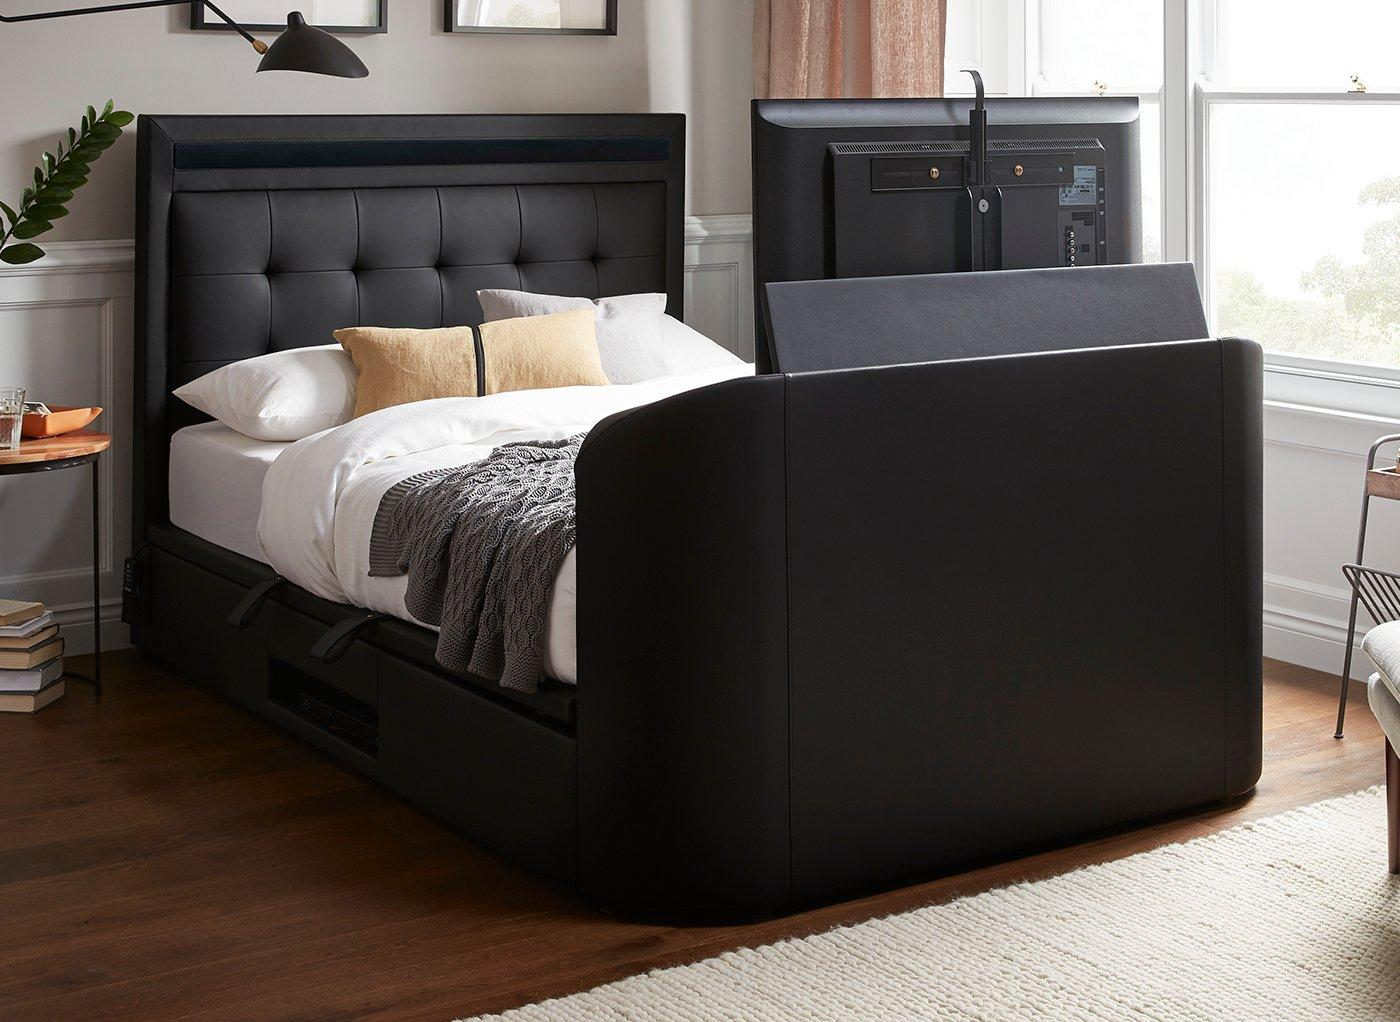 Dreams Tokyo Upholstered 43″ LED TV & 5.1 Surround Sound System Bed Frame from £1599